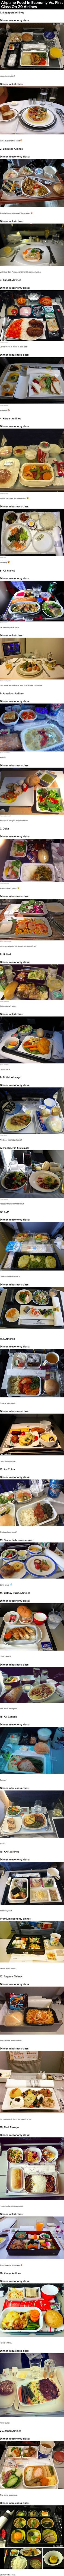 Airplane Food In Economy Vs. First Class On 20 Airlines<< for the record, Singapore airlines Econ class food is pretty good.